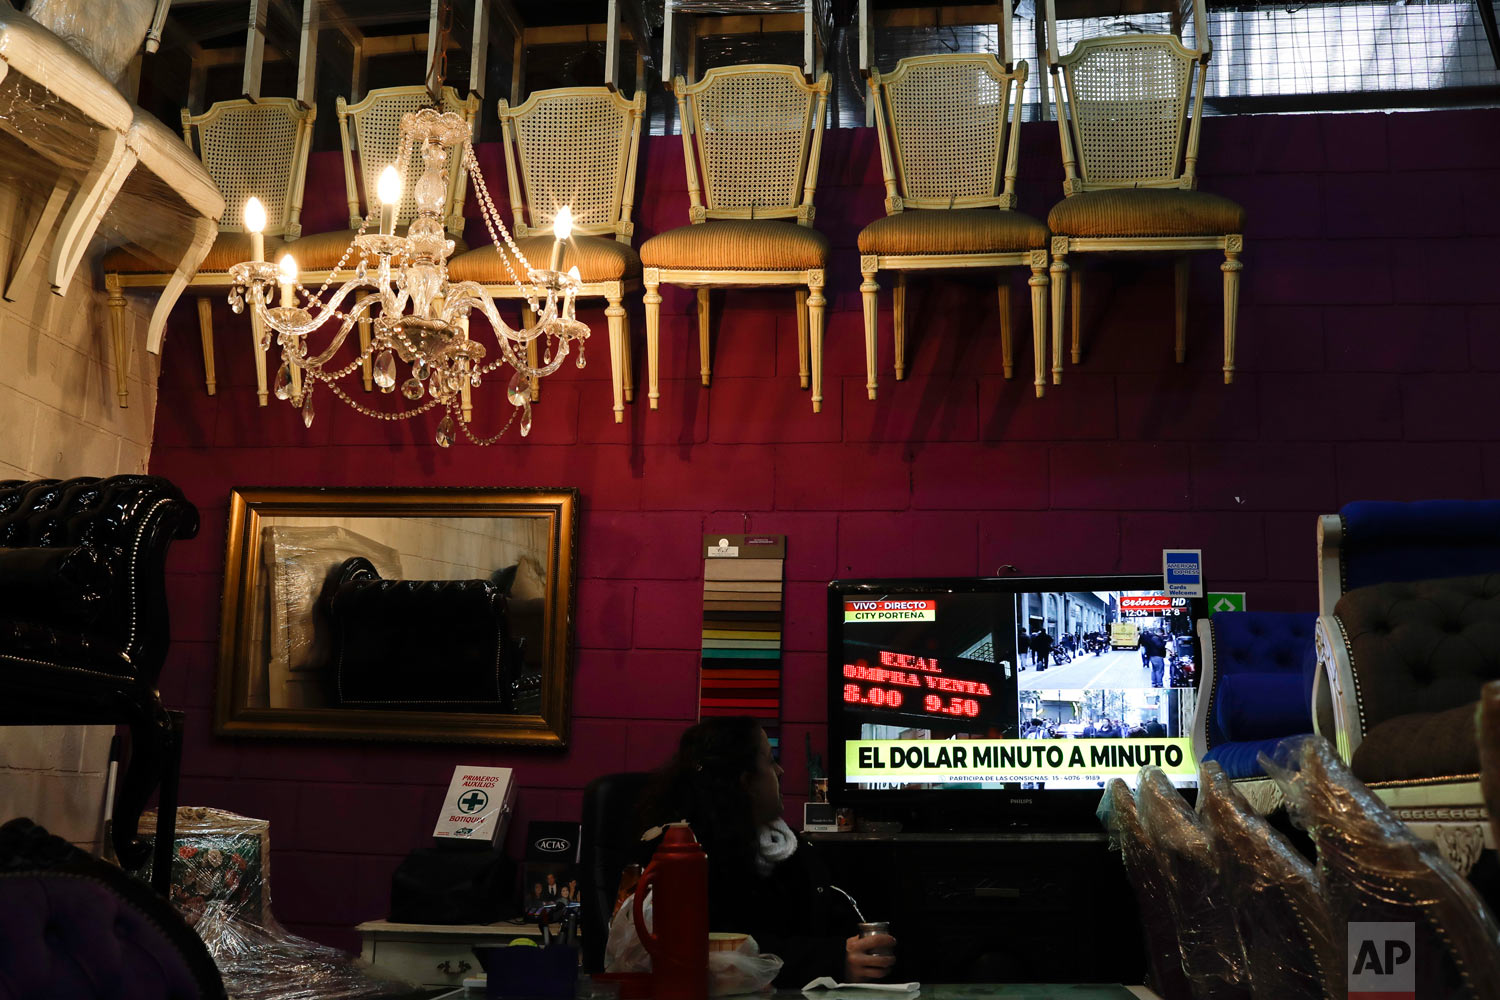 In this Aug. 30, 2018 photo, a woman watches the news on the value of the Argentine peso versus the U.S. dollar in Buenos Aires, Argentina. Inflation is killing the purchasing power of Argentines whose rate of around 45 percent is one of the world's worst. (AP Photo/Natacha Pisarenko)